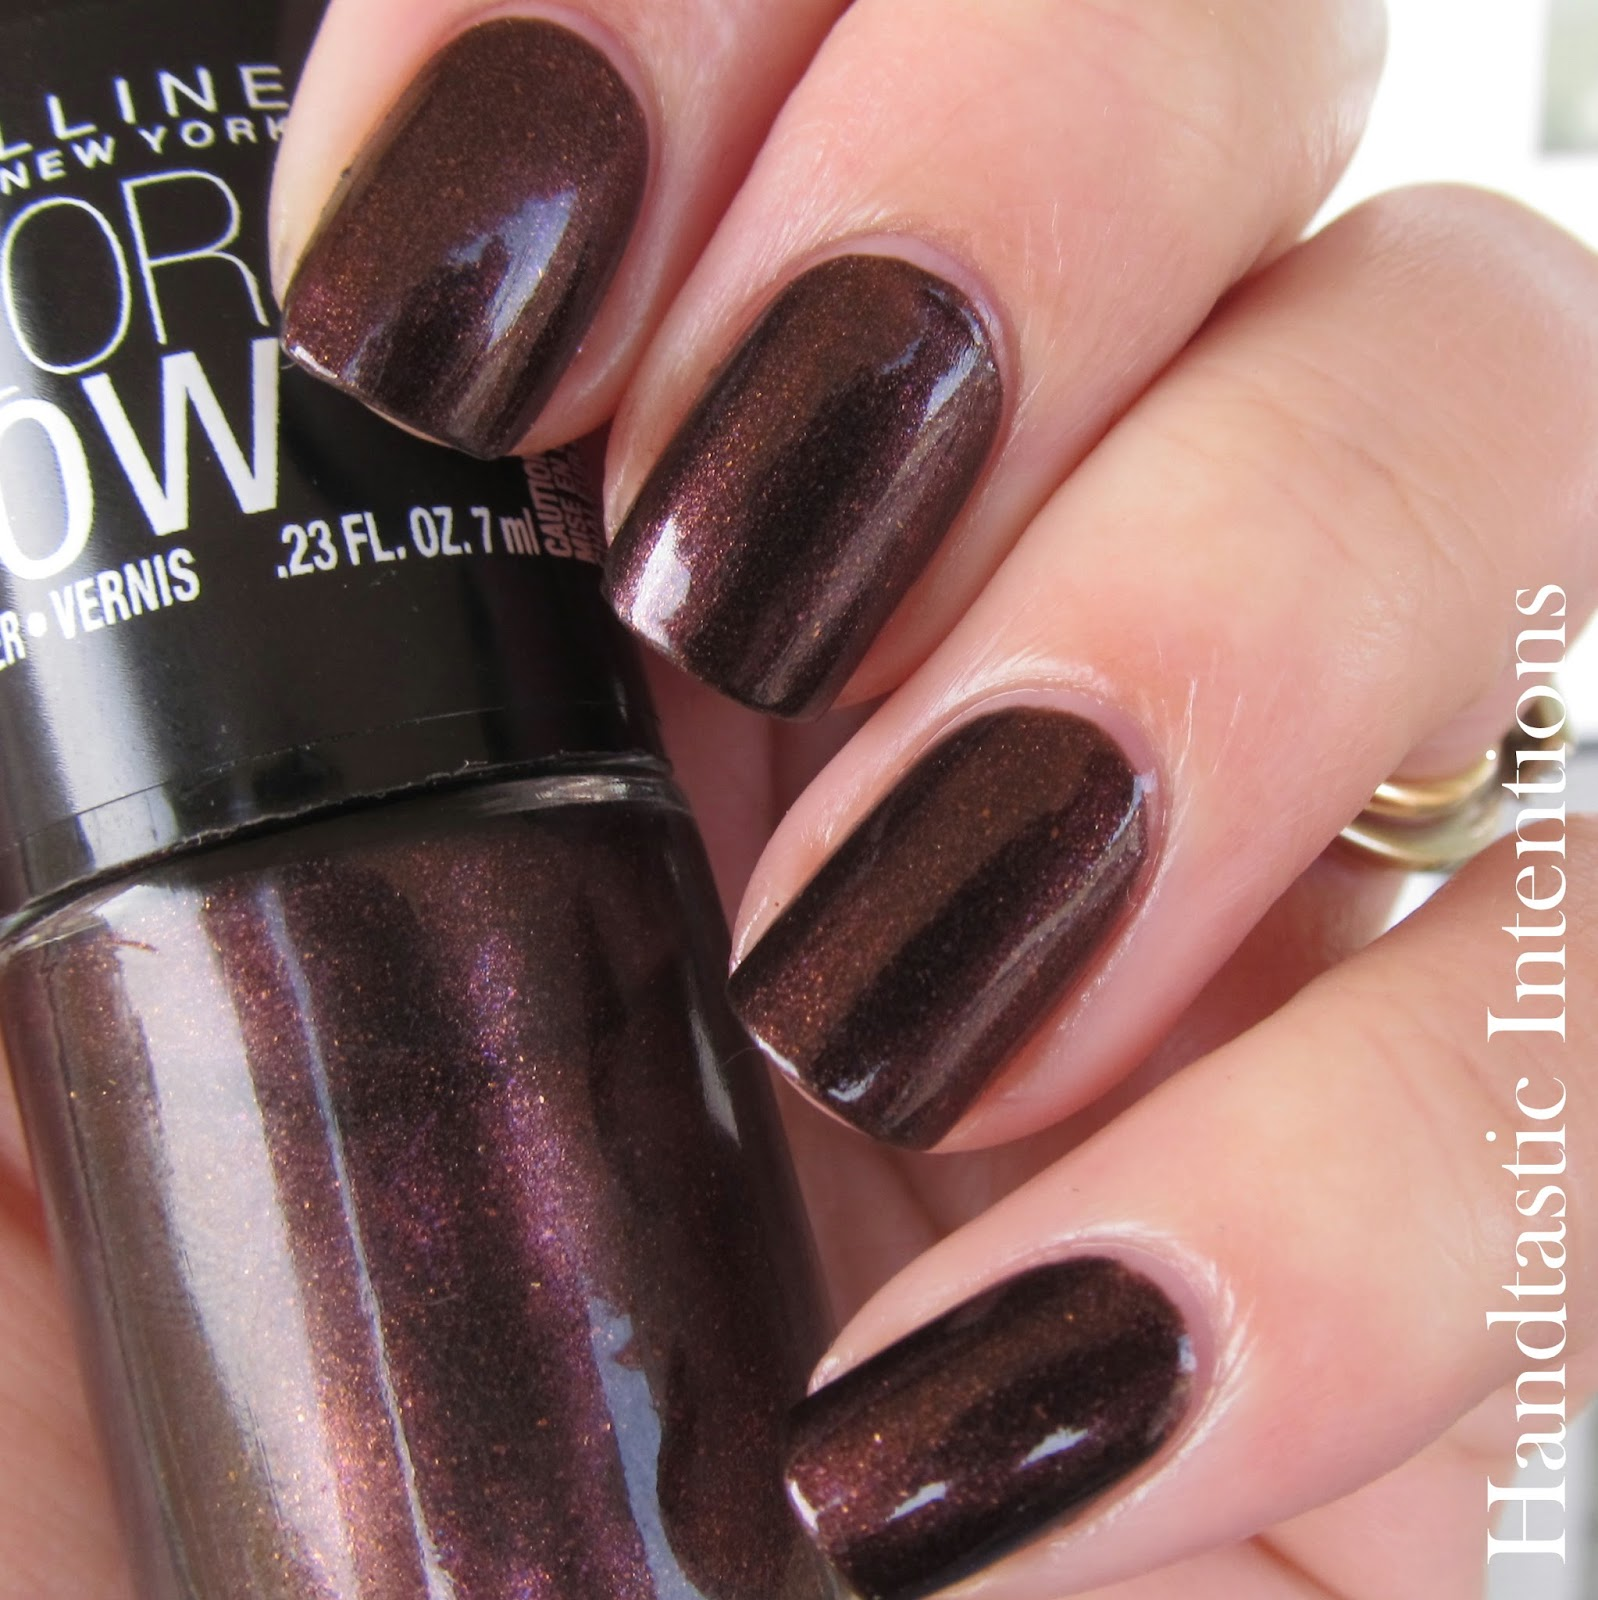 Handtastic Intentions: Swatch and Review of Maybelline Color Show